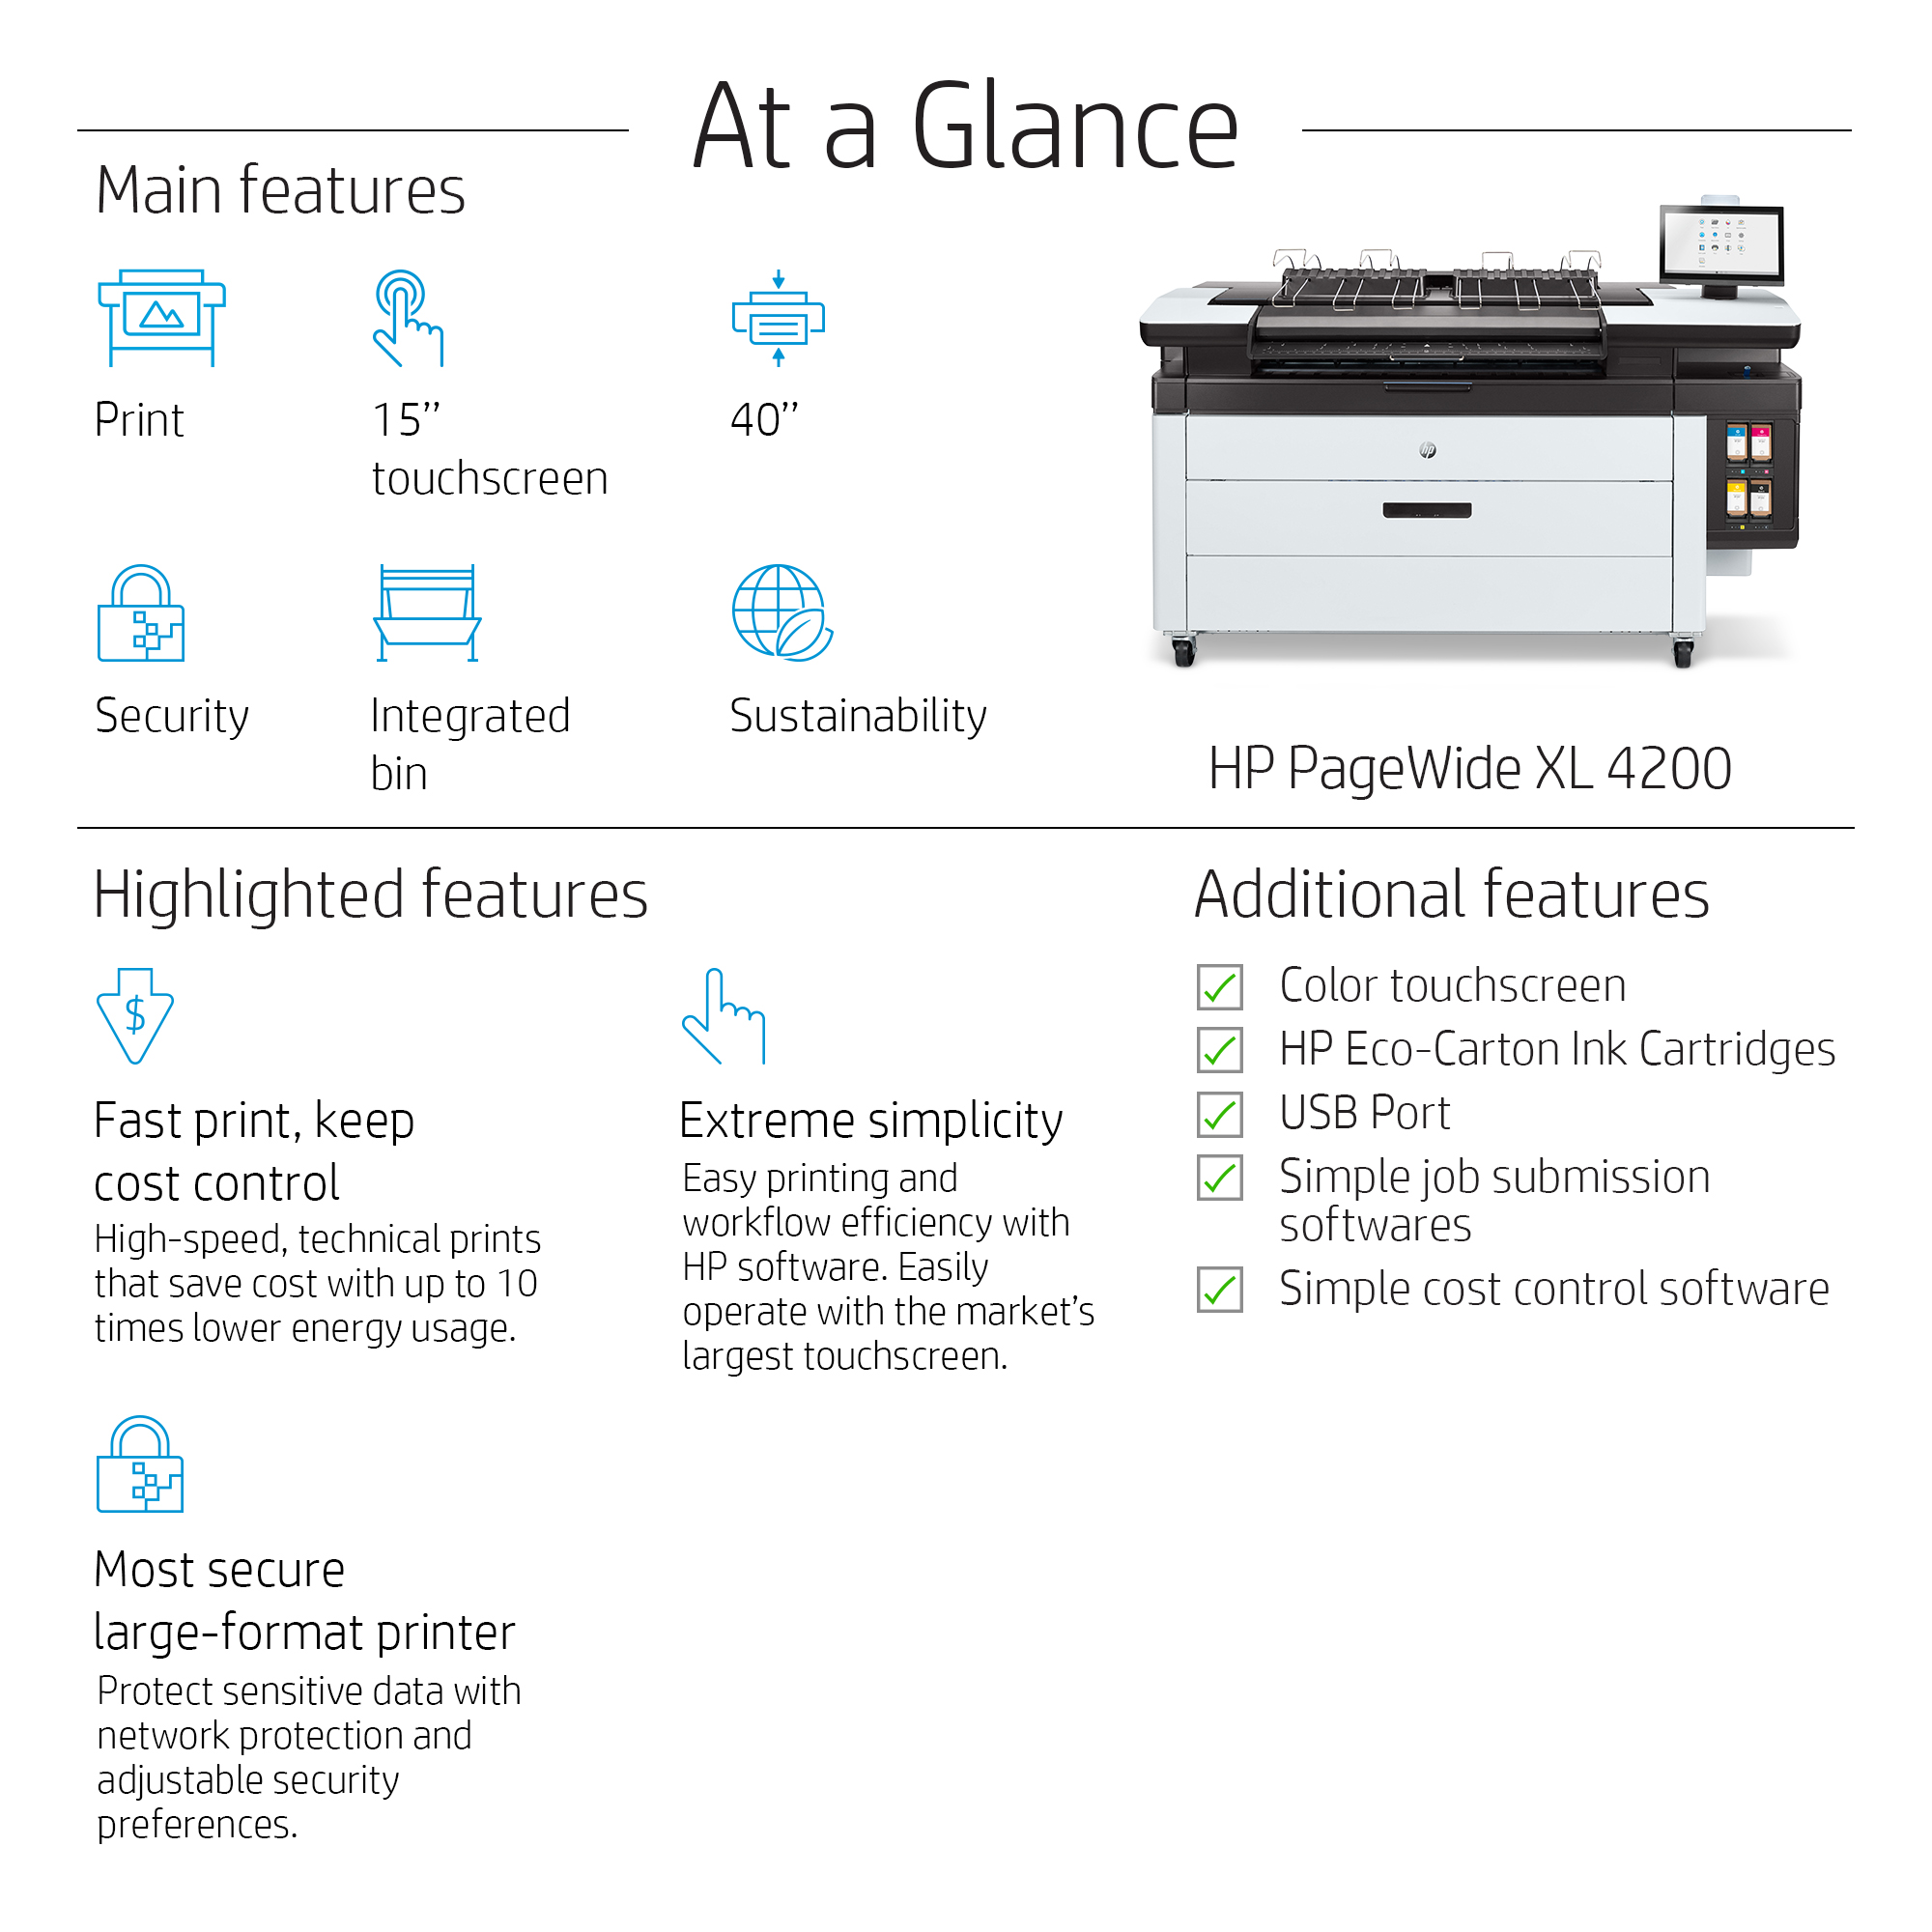 HP_PageWide_XL_4200_At_a_glance